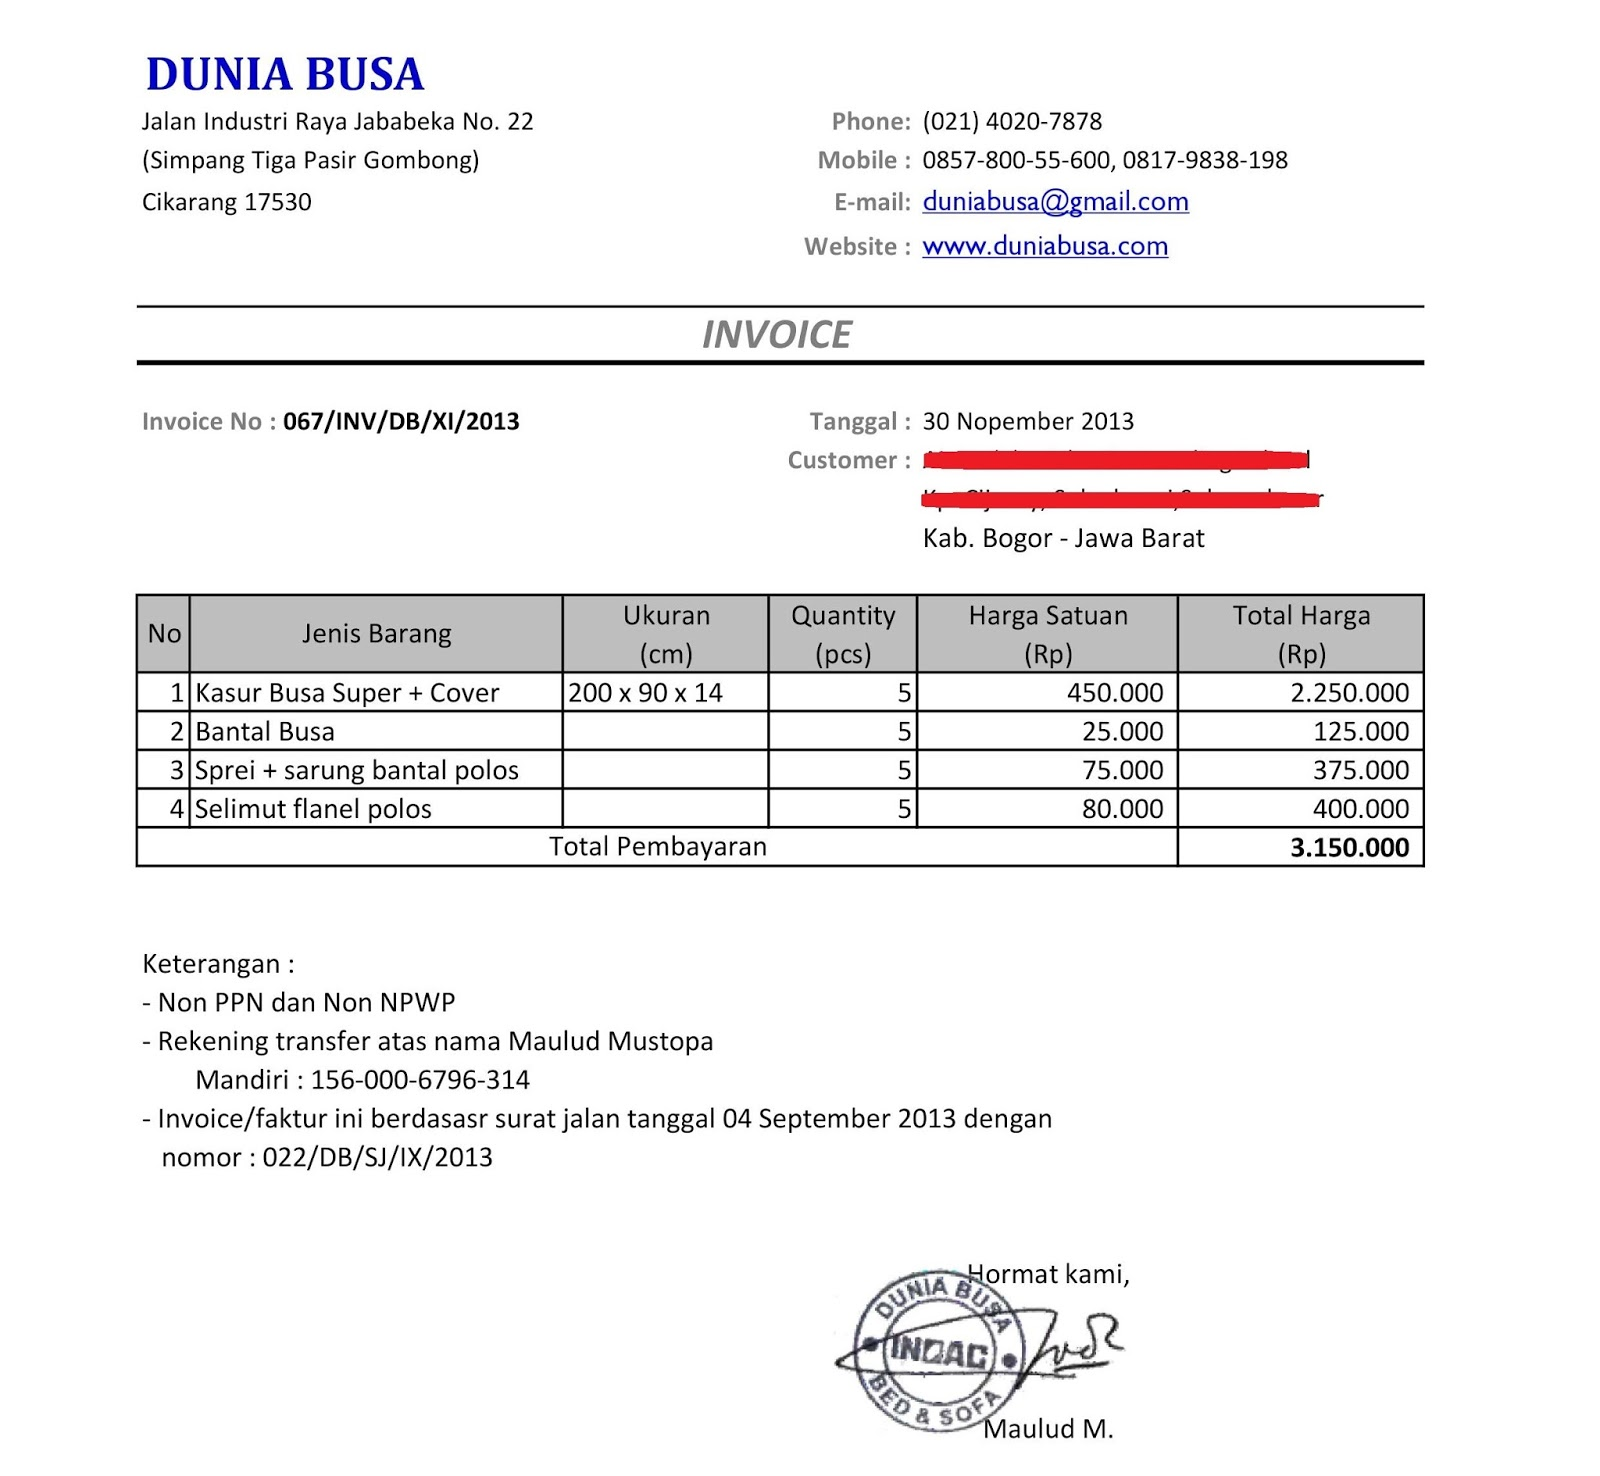 Centralasianshepherdus  Pleasing Free Invoice Online  Create Invoice Online  Invoice Template  With Interesting Contoh Format Invoice Atau Surat Tagihan  Brankas Arsip  Free Invoice Online With Amusing Invoice Template Free Word Also Freelance Graphic Design Invoice In Addition How To Fill Out Invoice And Past Due Invoice Template As Well As Contract Invoice Template Additionally Professional Invoice Template Word From Sklepco With Centralasianshepherdus  Interesting Free Invoice Online  Create Invoice Online  Invoice Template  With Amusing Contoh Format Invoice Atau Surat Tagihan  Brankas Arsip  Free Invoice Online And Pleasing Invoice Template Free Word Also Freelance Graphic Design Invoice In Addition How To Fill Out Invoice From Sklepco